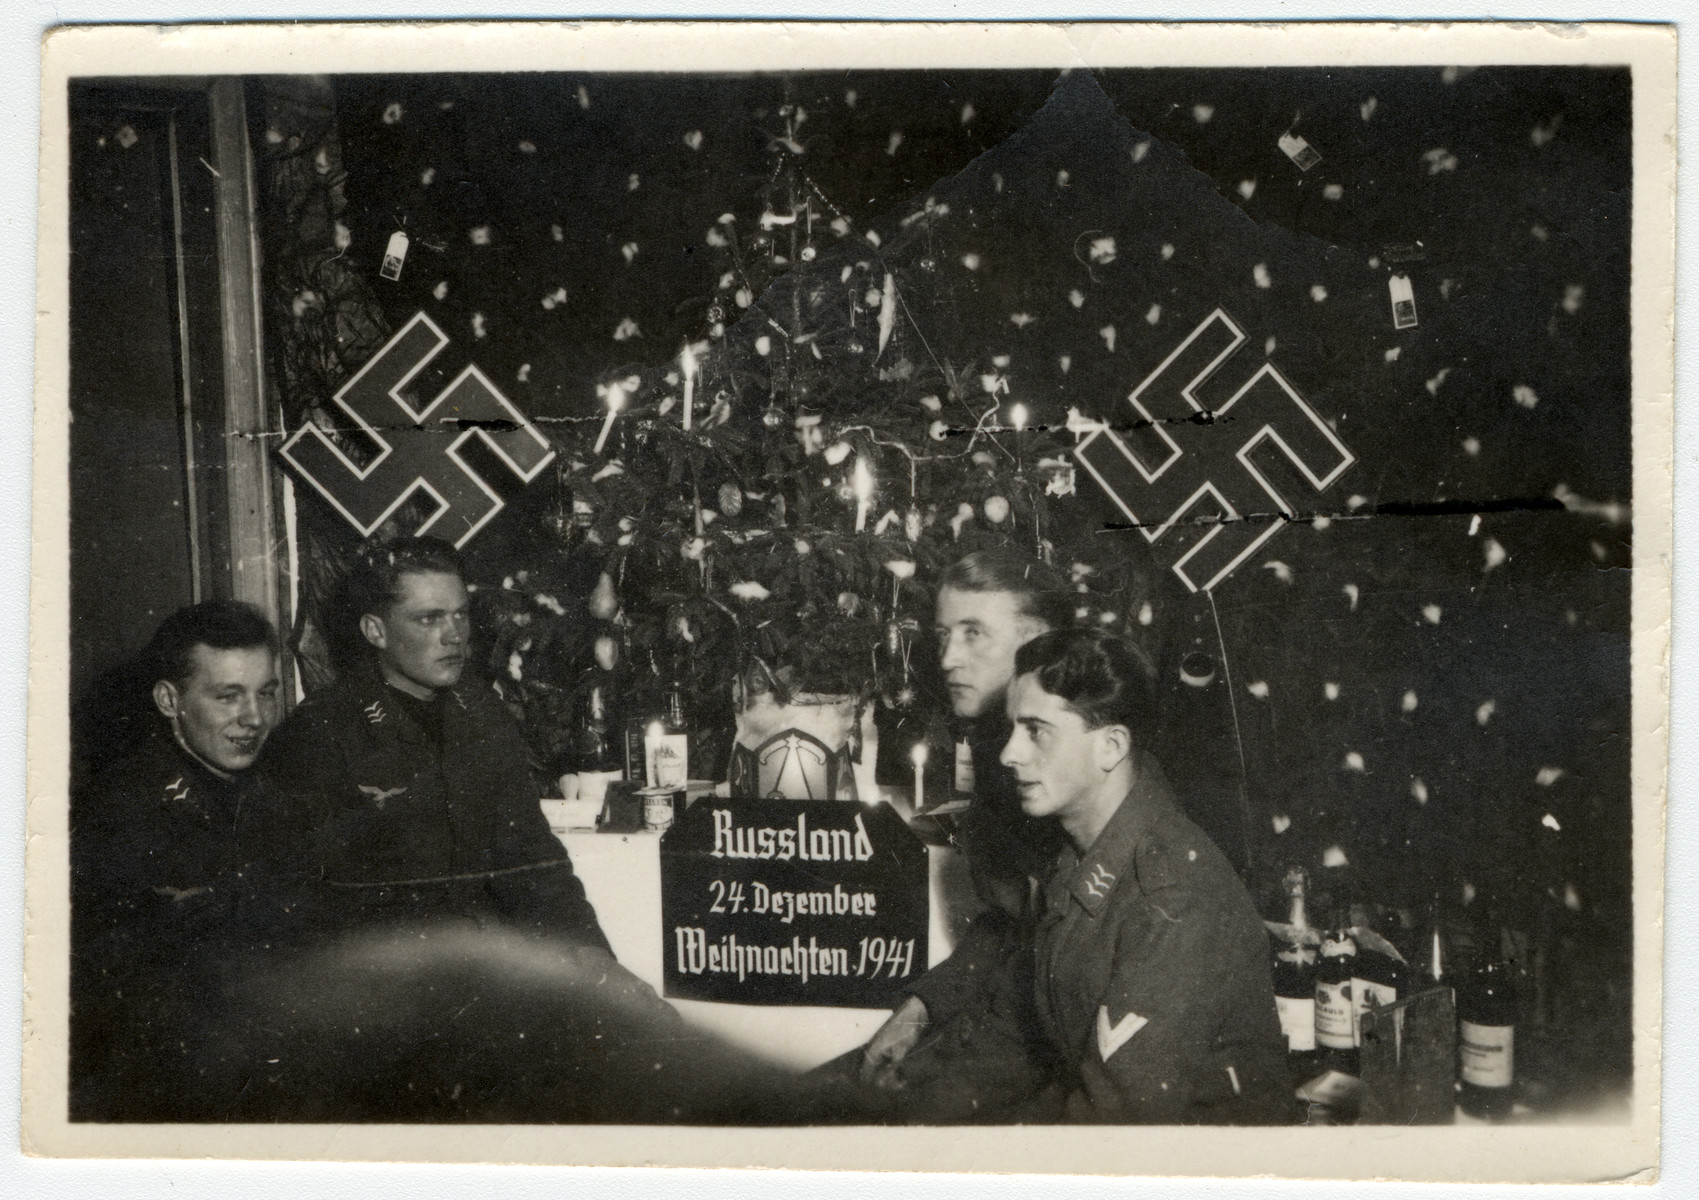 German soldiers on the eastern front relax at a Christmas celebration somewhere in the USSR.